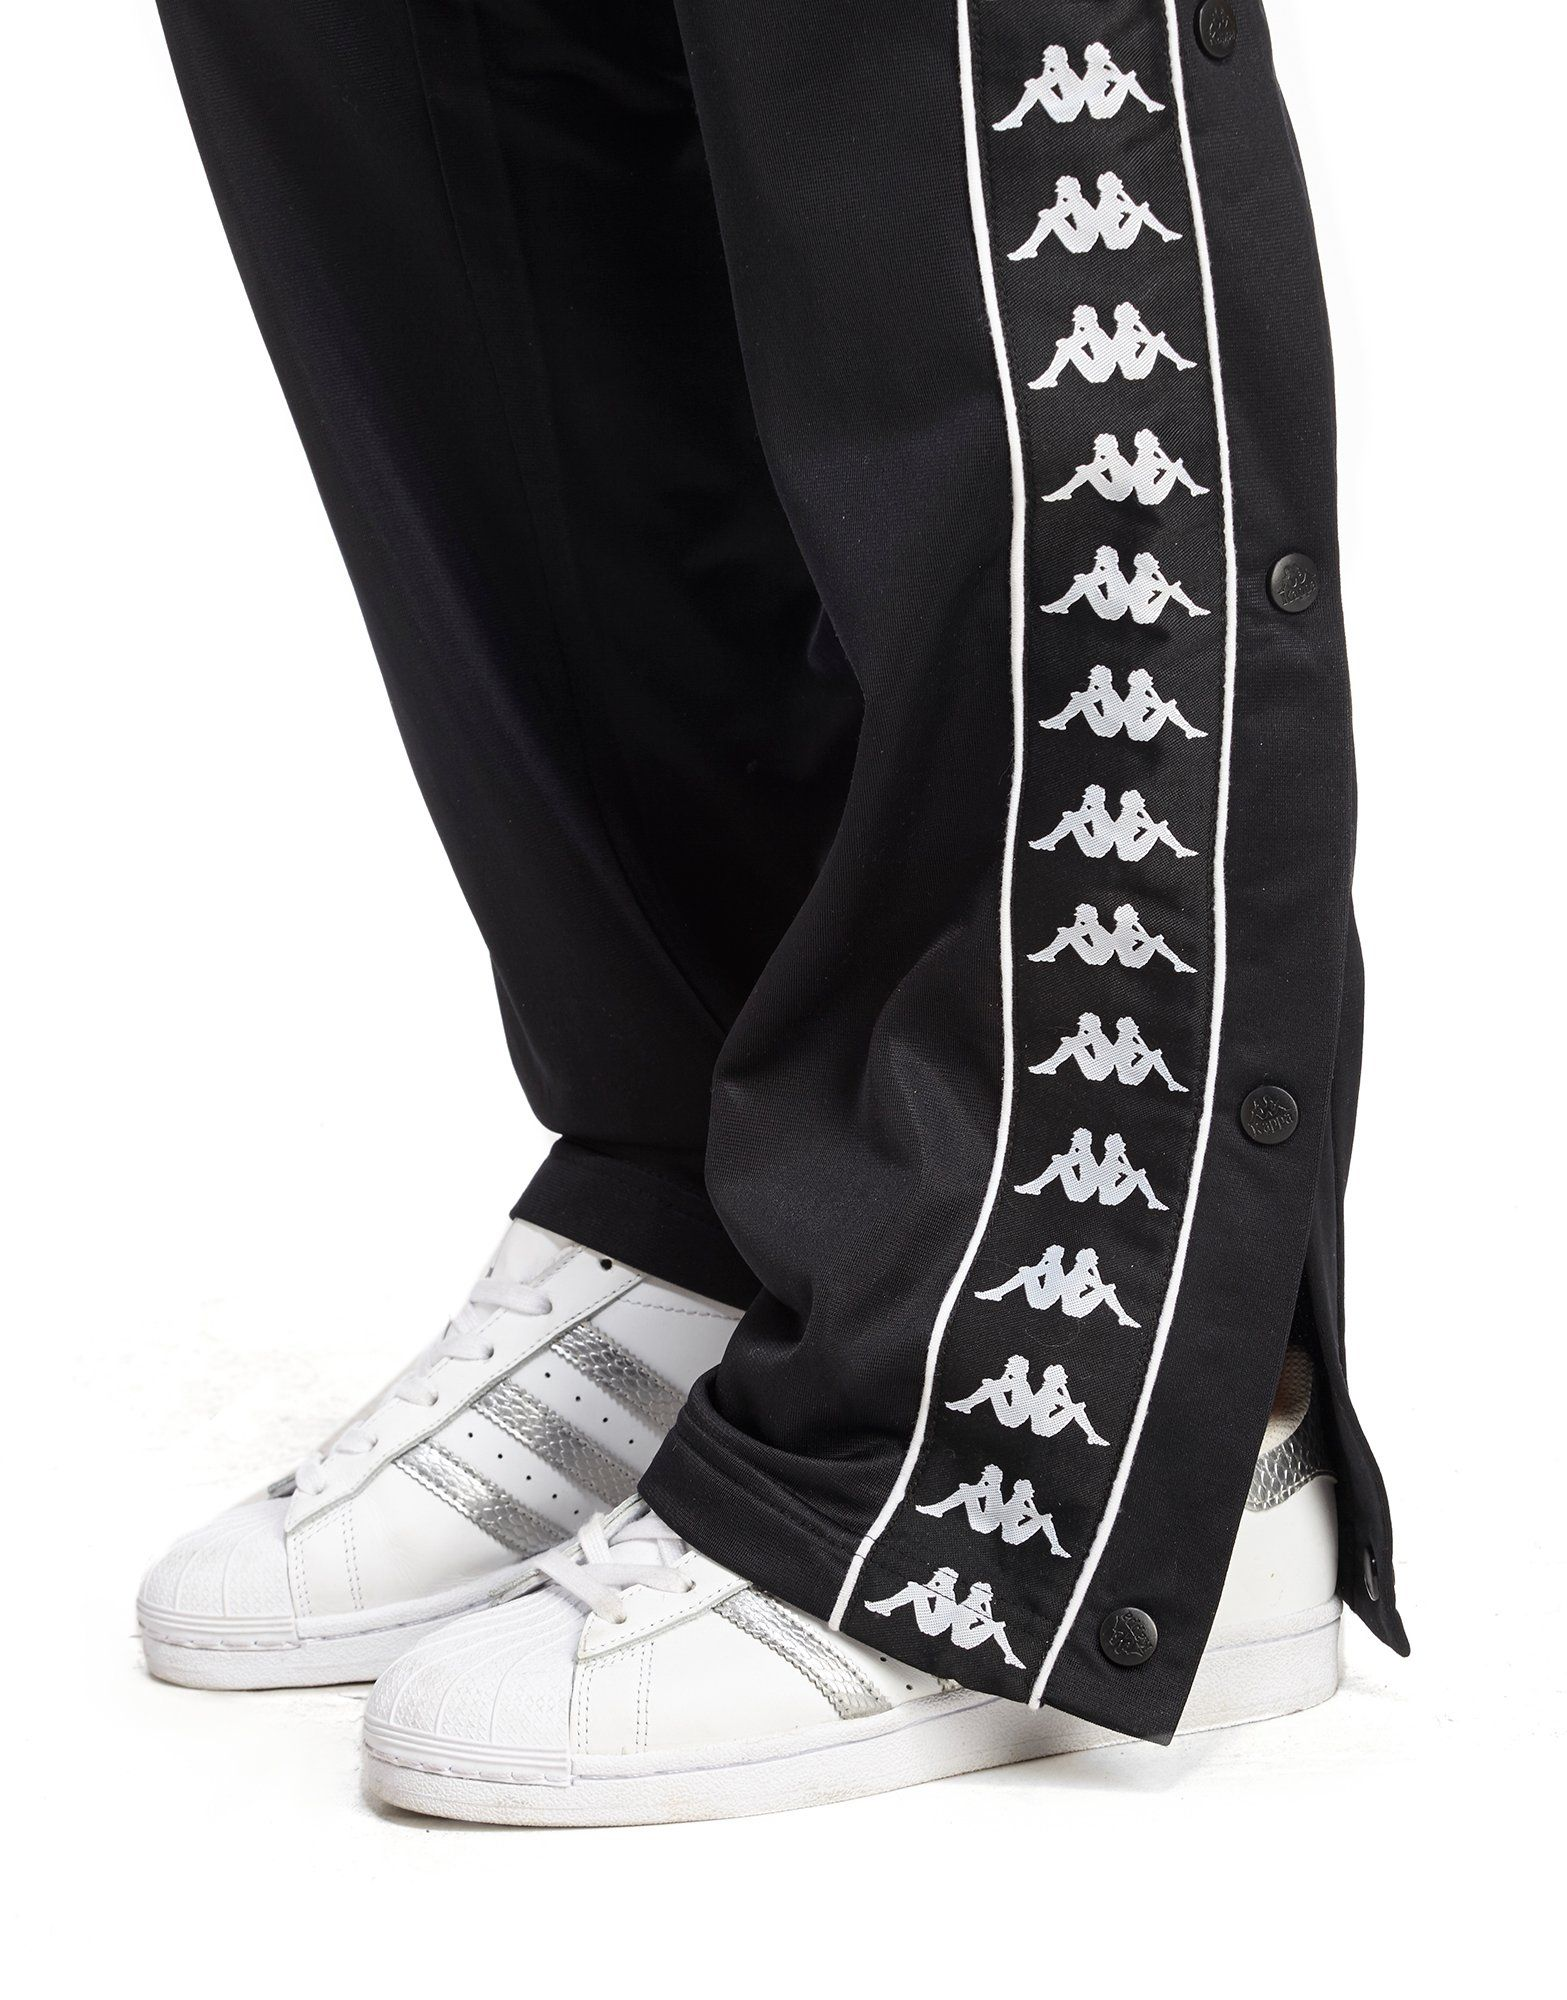 Kappa Authentic Popper Pants | JD Sports